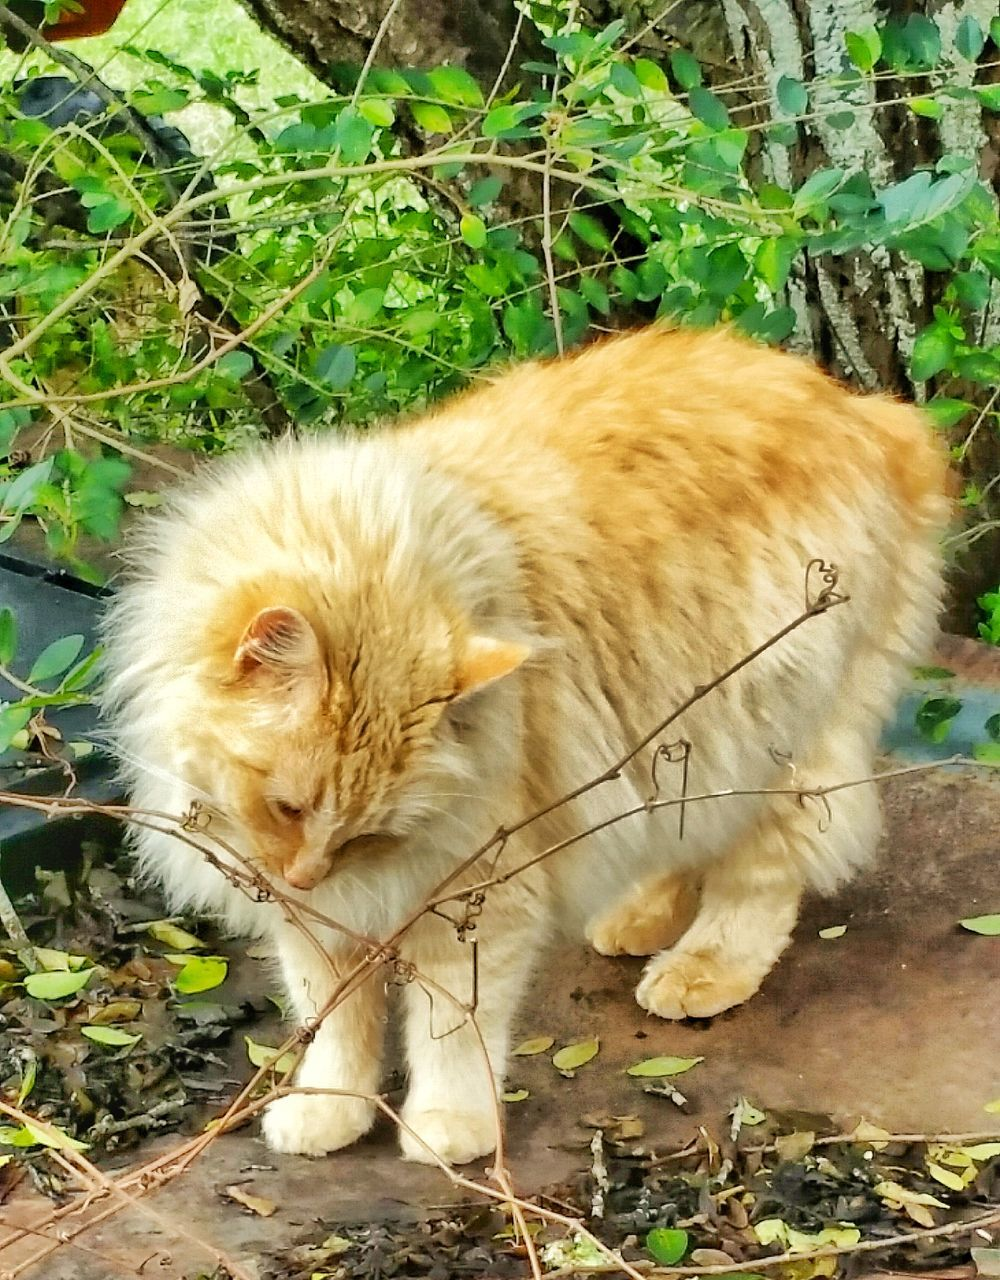 domestic cat, animal themes, one animal, mammal, domestic animals, feline, cat, pets, no people, day, outdoors, field, sitting, grass, nature